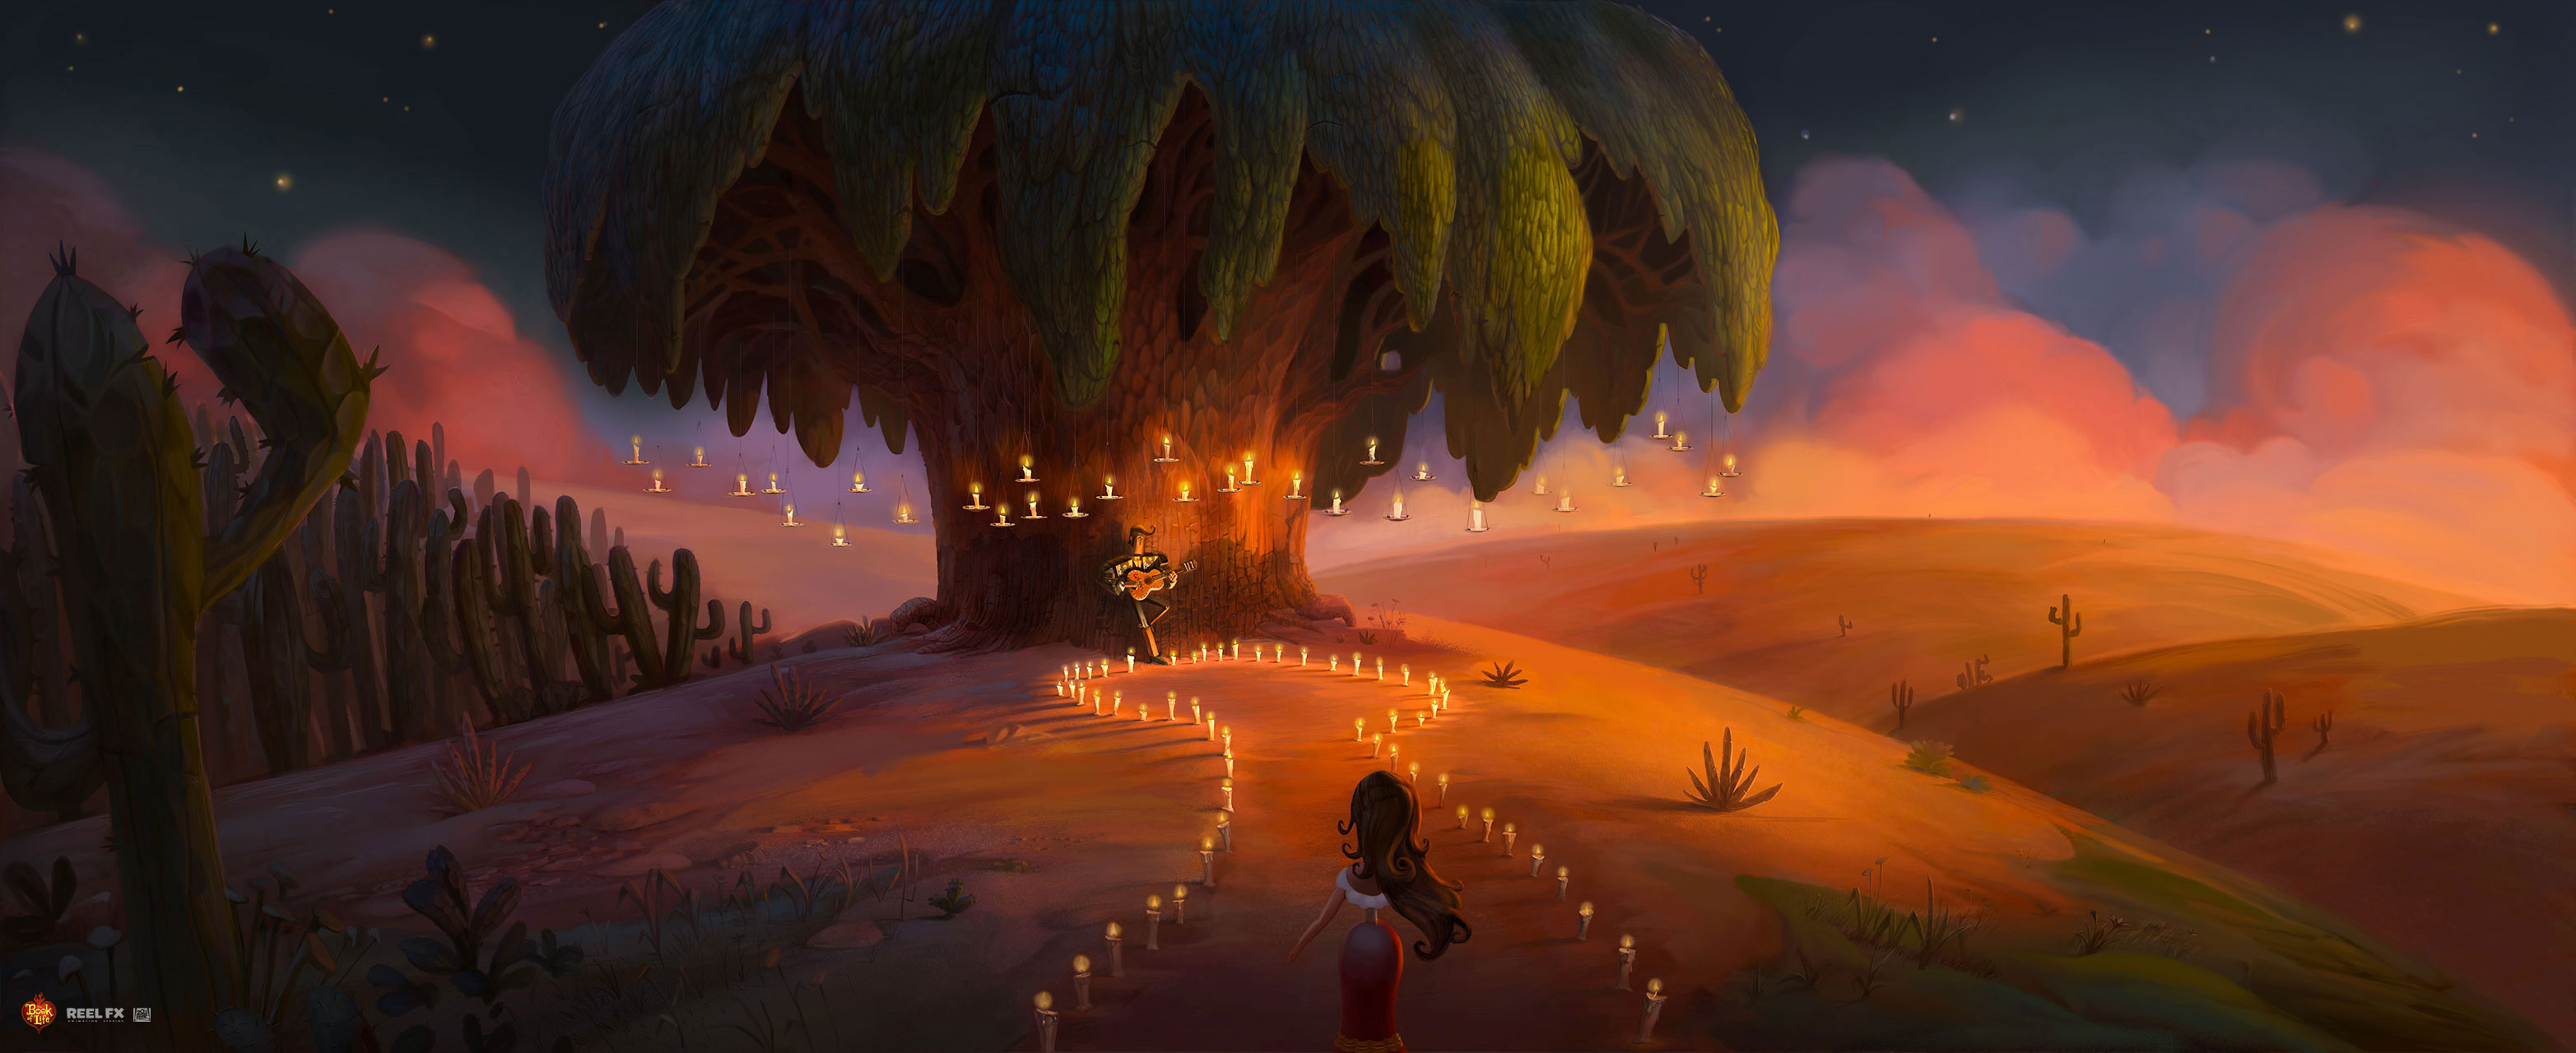 The Book of Life Concept Art (8 pics)